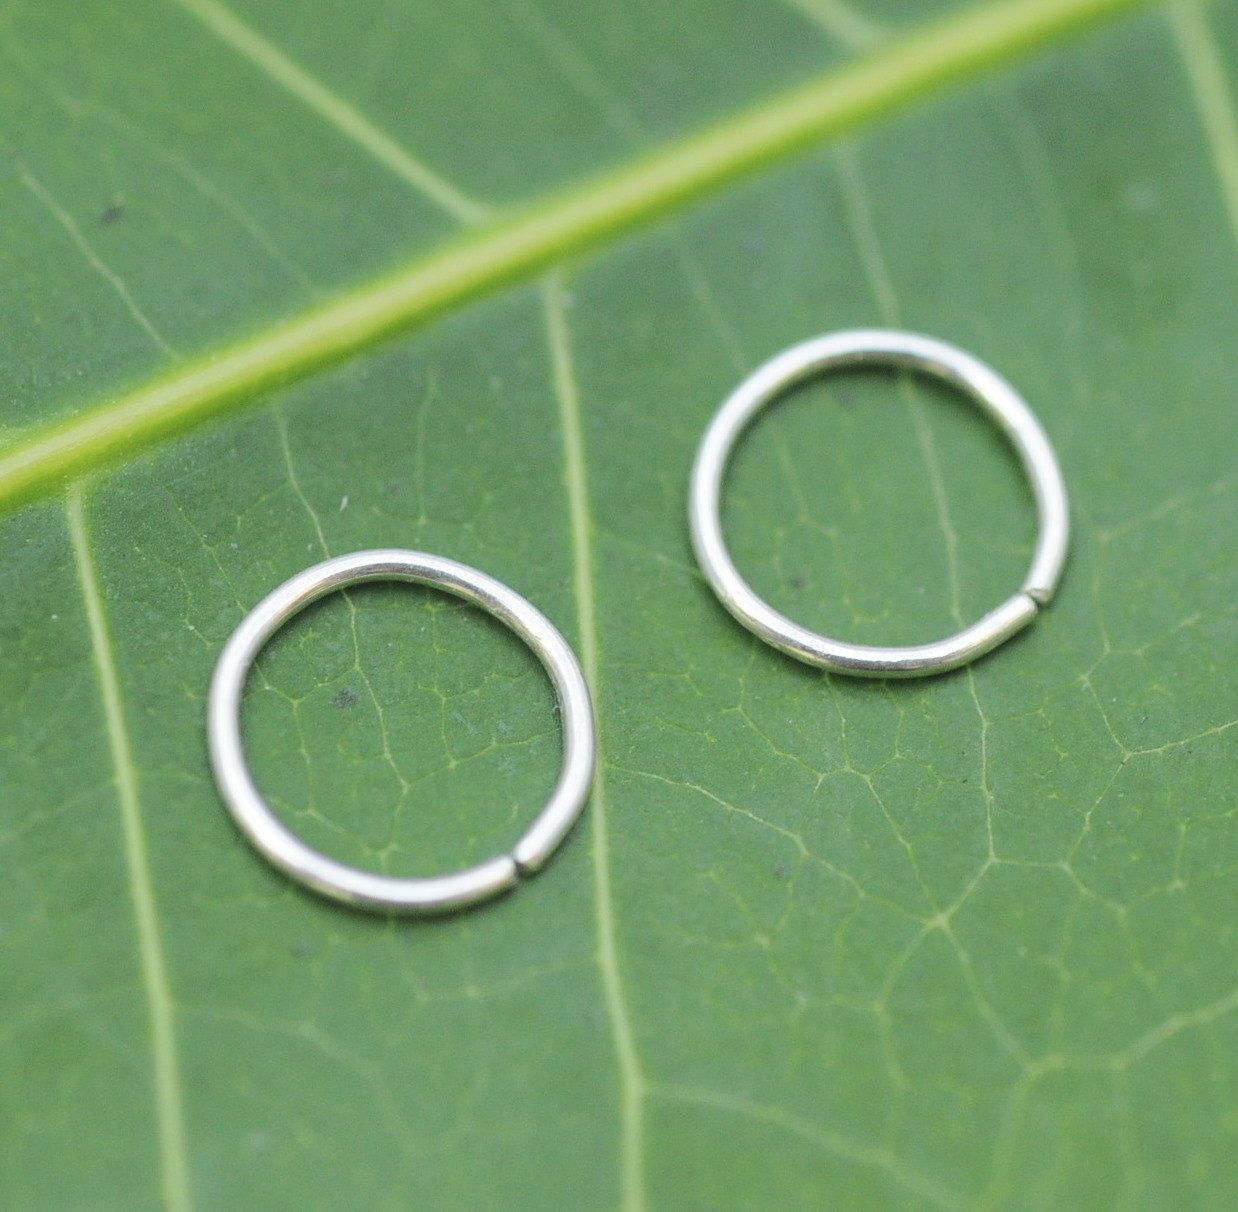 Extra Small Sterling Silver Hoop Earrings By Holylandstreasures